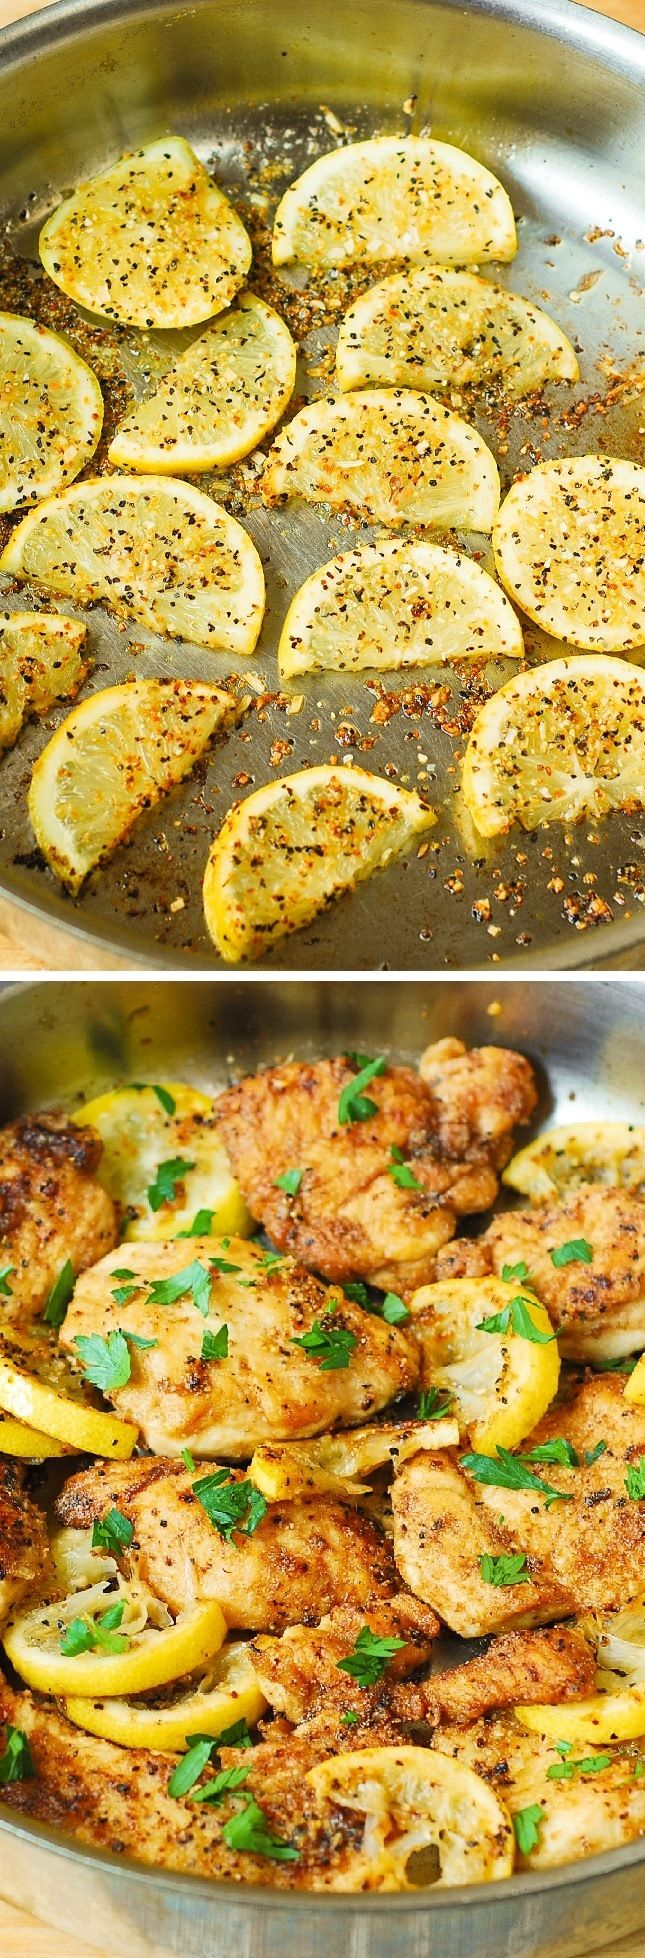 This lemon chicken skillet is a super quick and easy recipe that takes only 30 minutes to make. Healthy and gluten free! | @andwhatelse